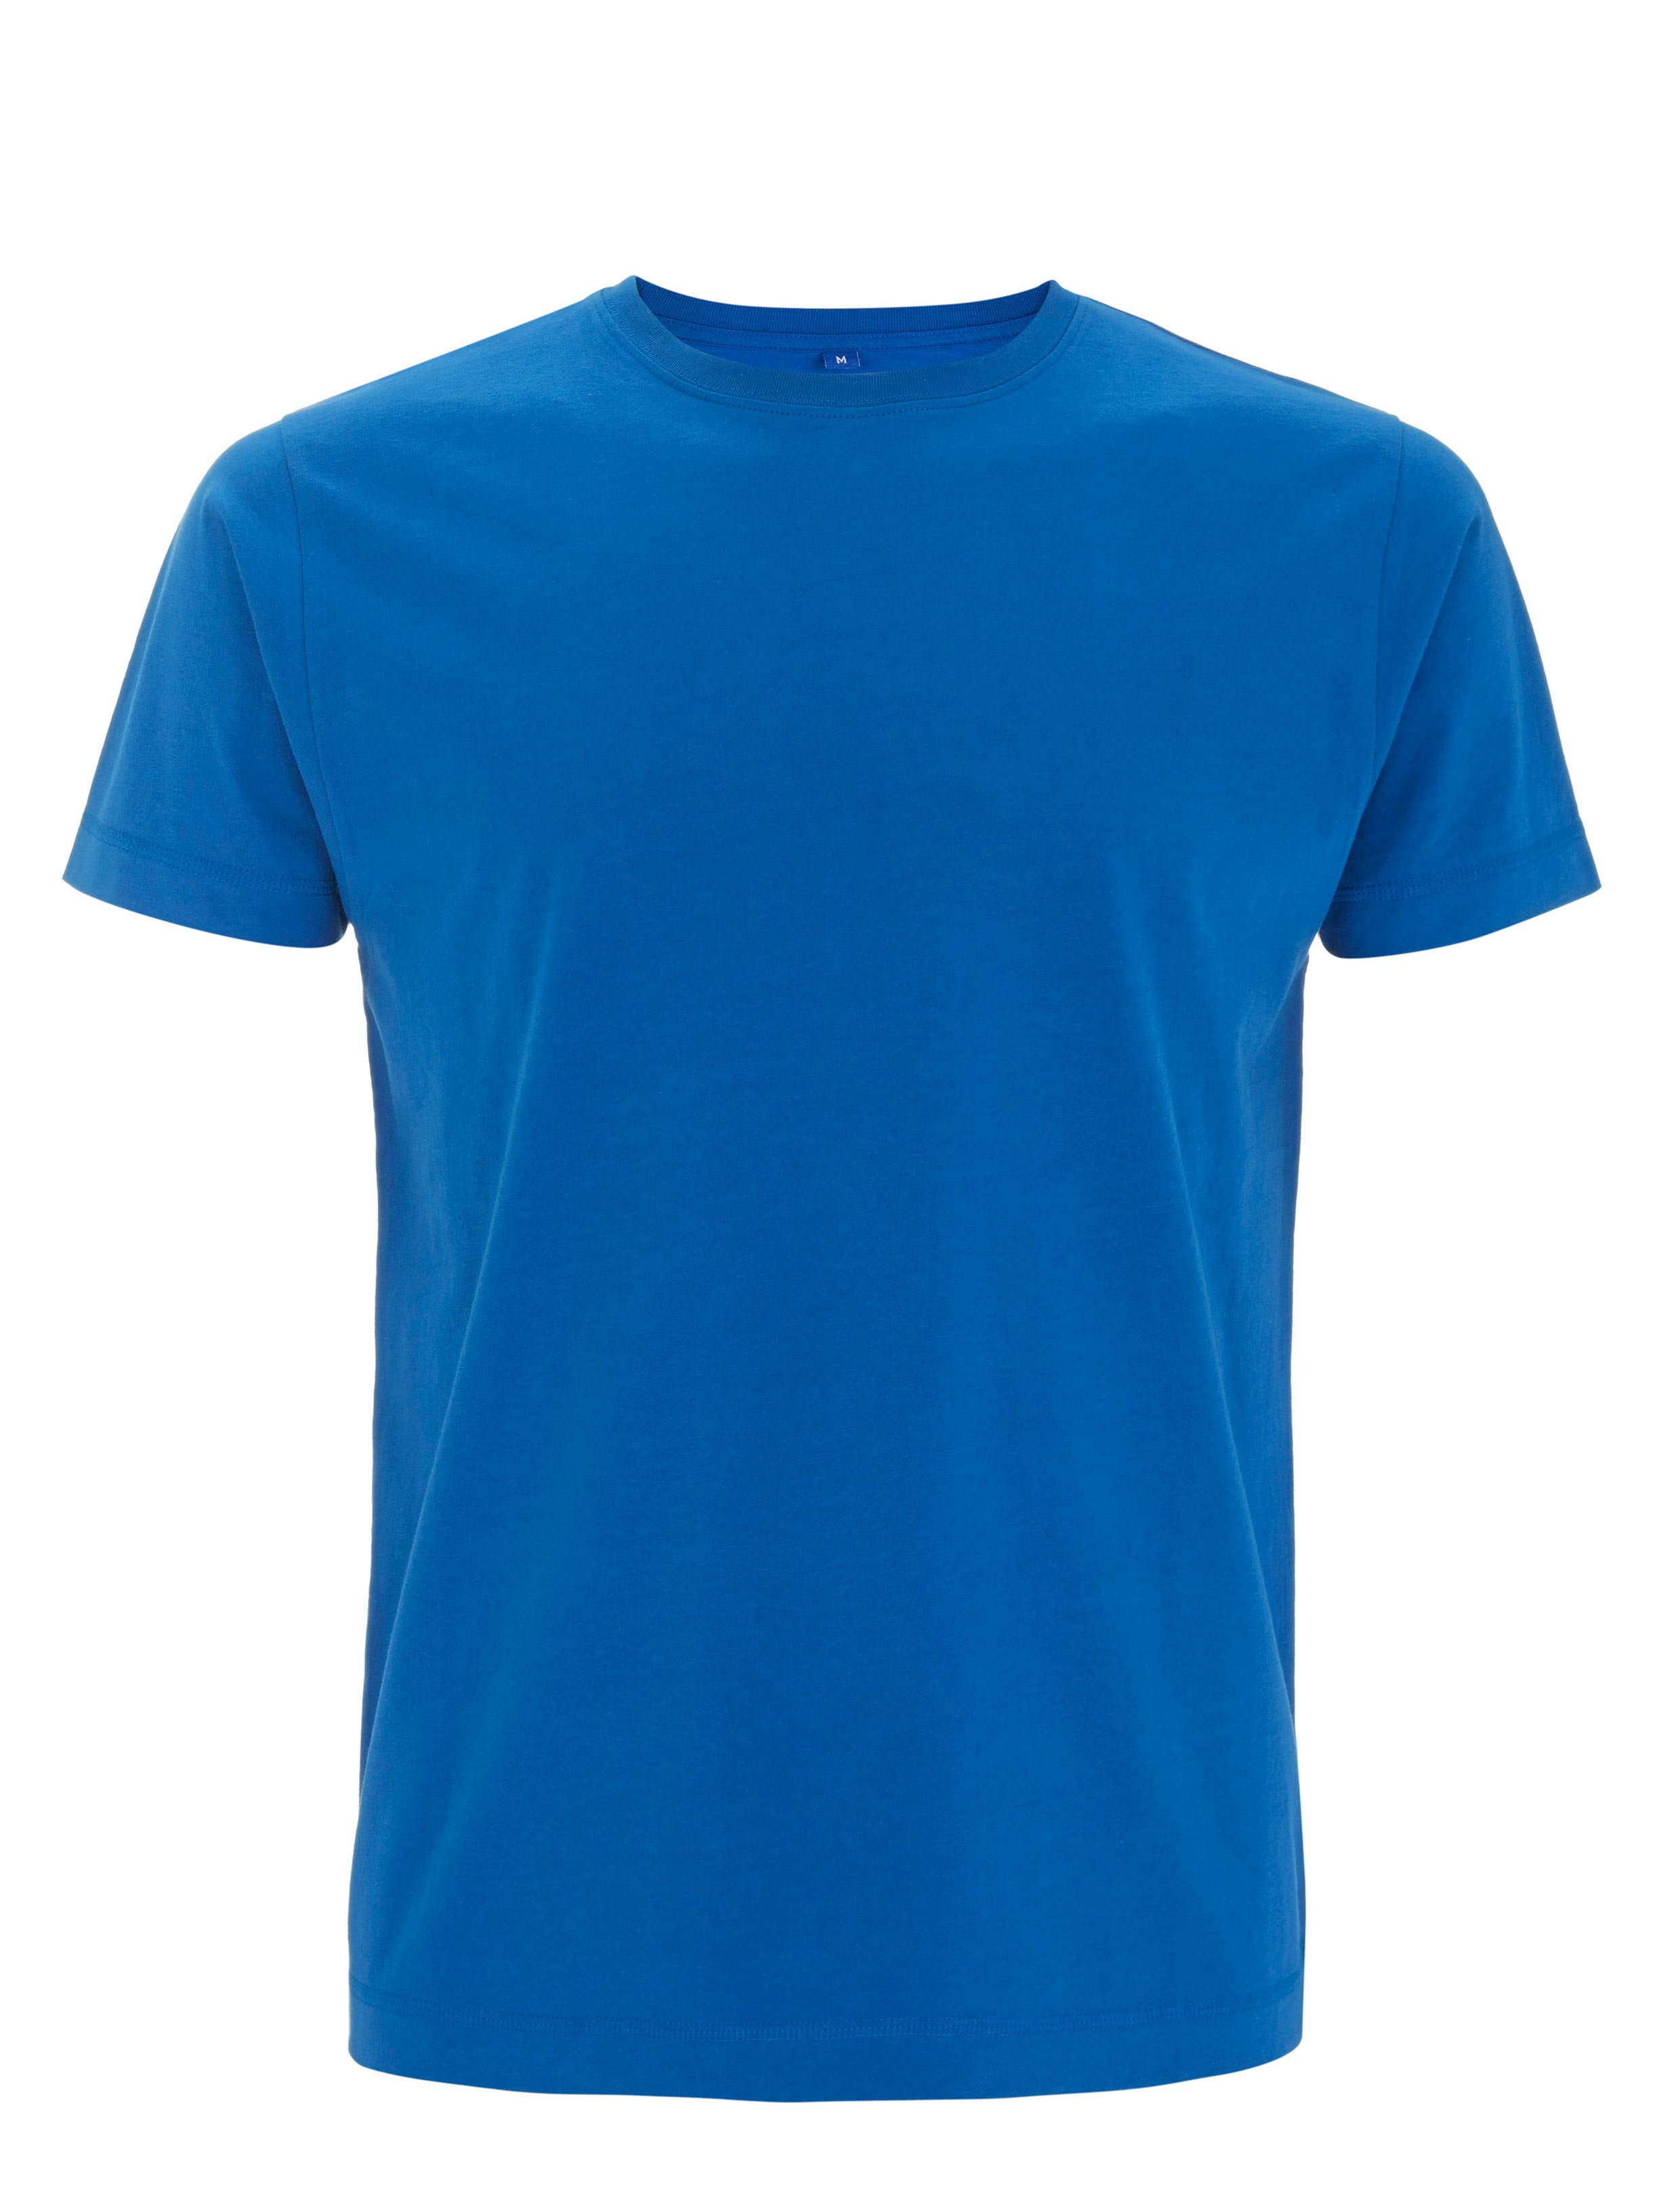 Continental Unisex Classic Jersey T-Shirts